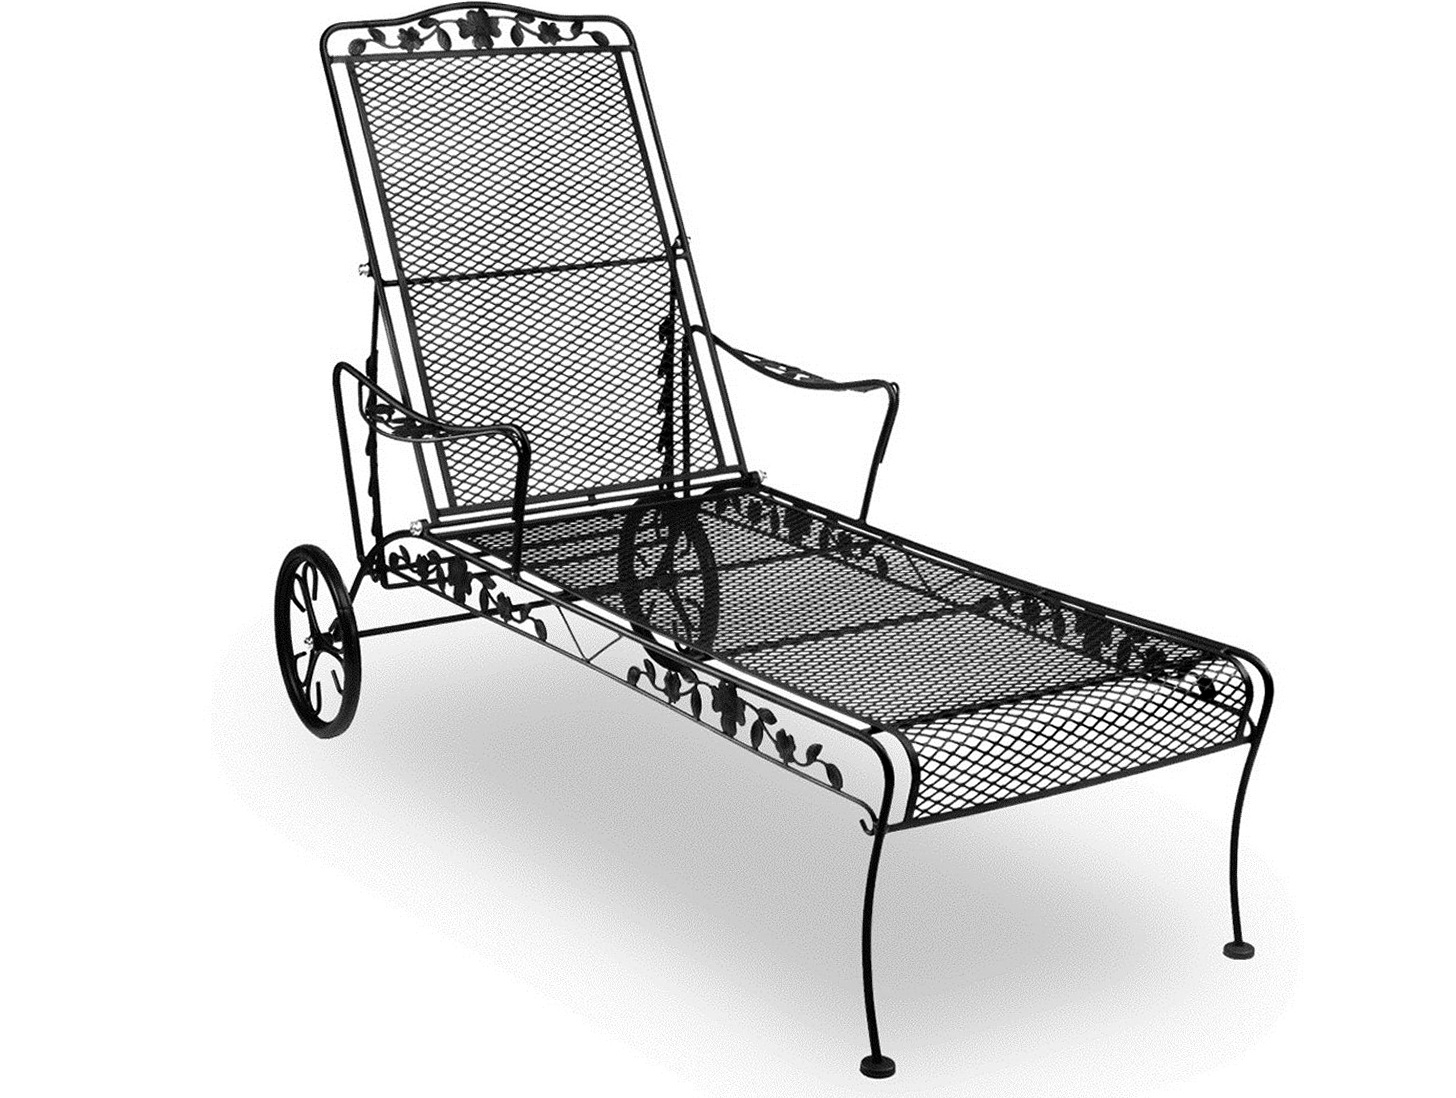 Home Design Ideas Regarding Well Known Wrought Iron Chaise Lounges (View 4 of 15)